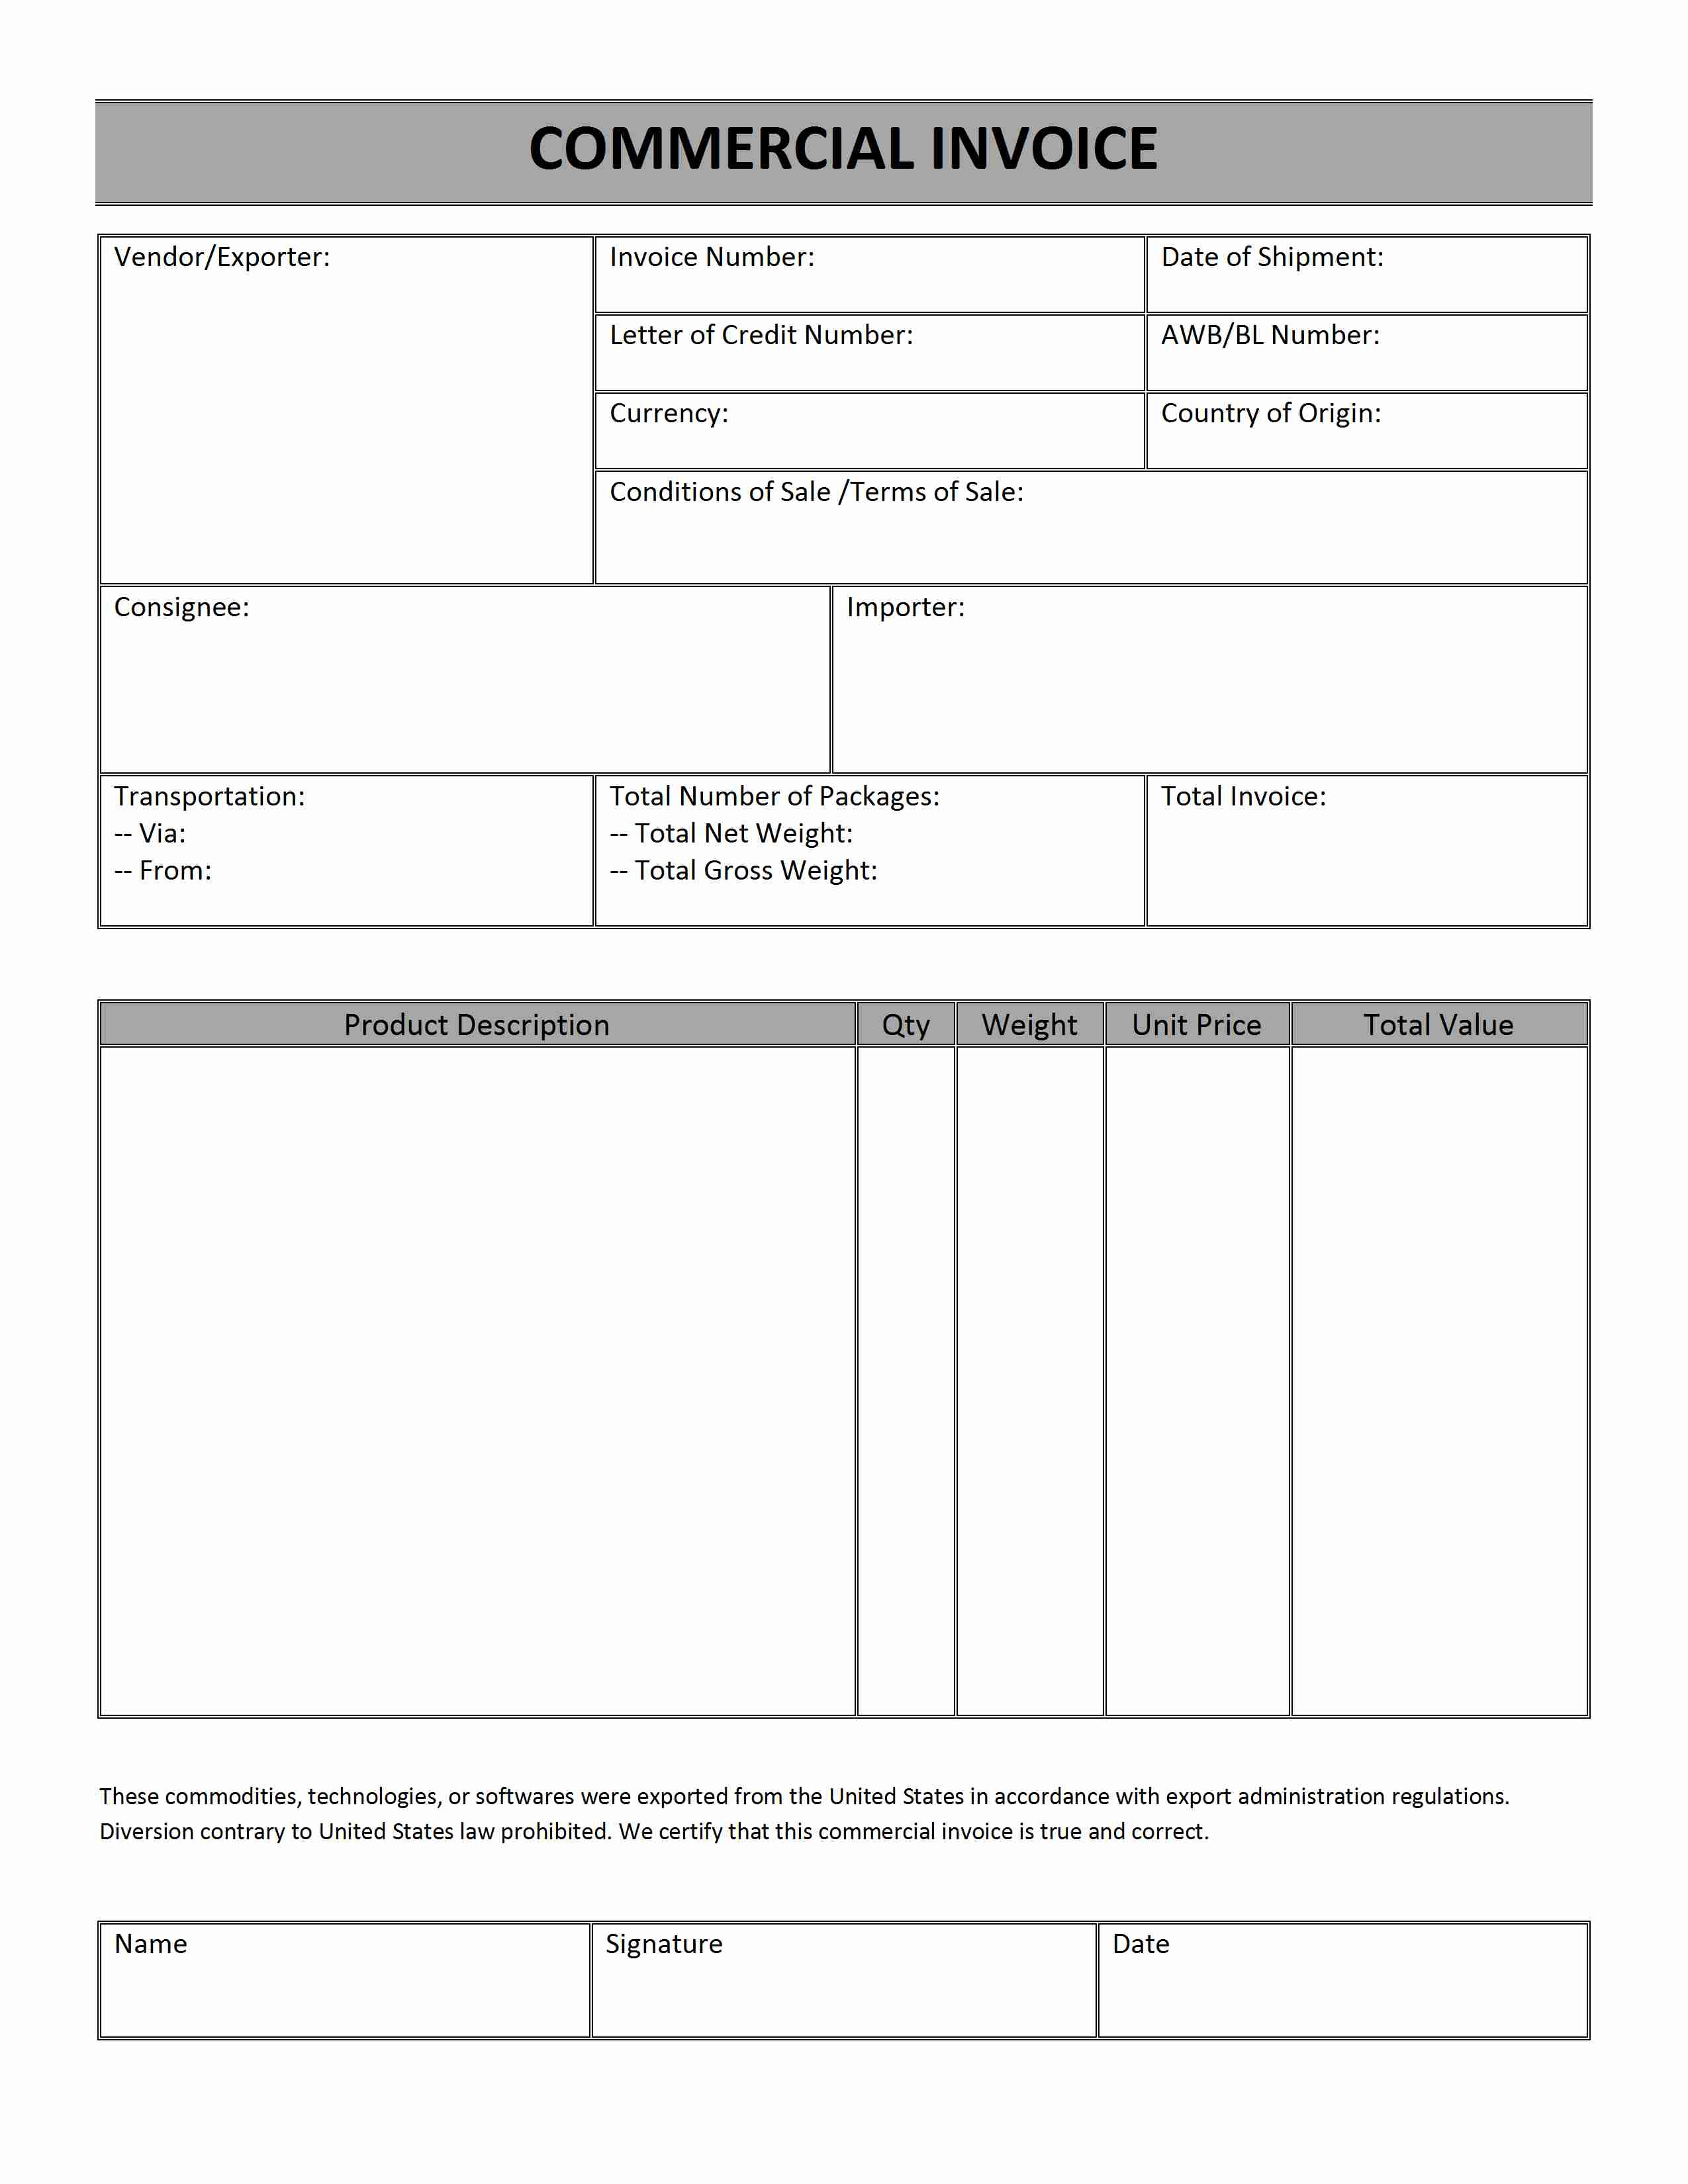 Maidofhonortoastus  Sweet Printable Sales Invoice Simple Invoice Form Free Invoice  With Exquisite Printable Receipt Free  Free Printable Raffle Tickets  Receipt   Printable With Extraordinary Independent Contractor Invoice Also Generate Invoice In Addition What Is An Invoice Paypal And What Is Paypal Invoice As Well As Create Free Invoice Additionally How To Fill Out An Invoice From Happytomco With Maidofhonortoastus  Exquisite Printable Sales Invoice Simple Invoice Form Free Invoice  With Extraordinary Printable Receipt Free  Free Printable Raffle Tickets  Receipt   Printable And Sweet Independent Contractor Invoice Also Generate Invoice In Addition What Is An Invoice Paypal From Happytomco